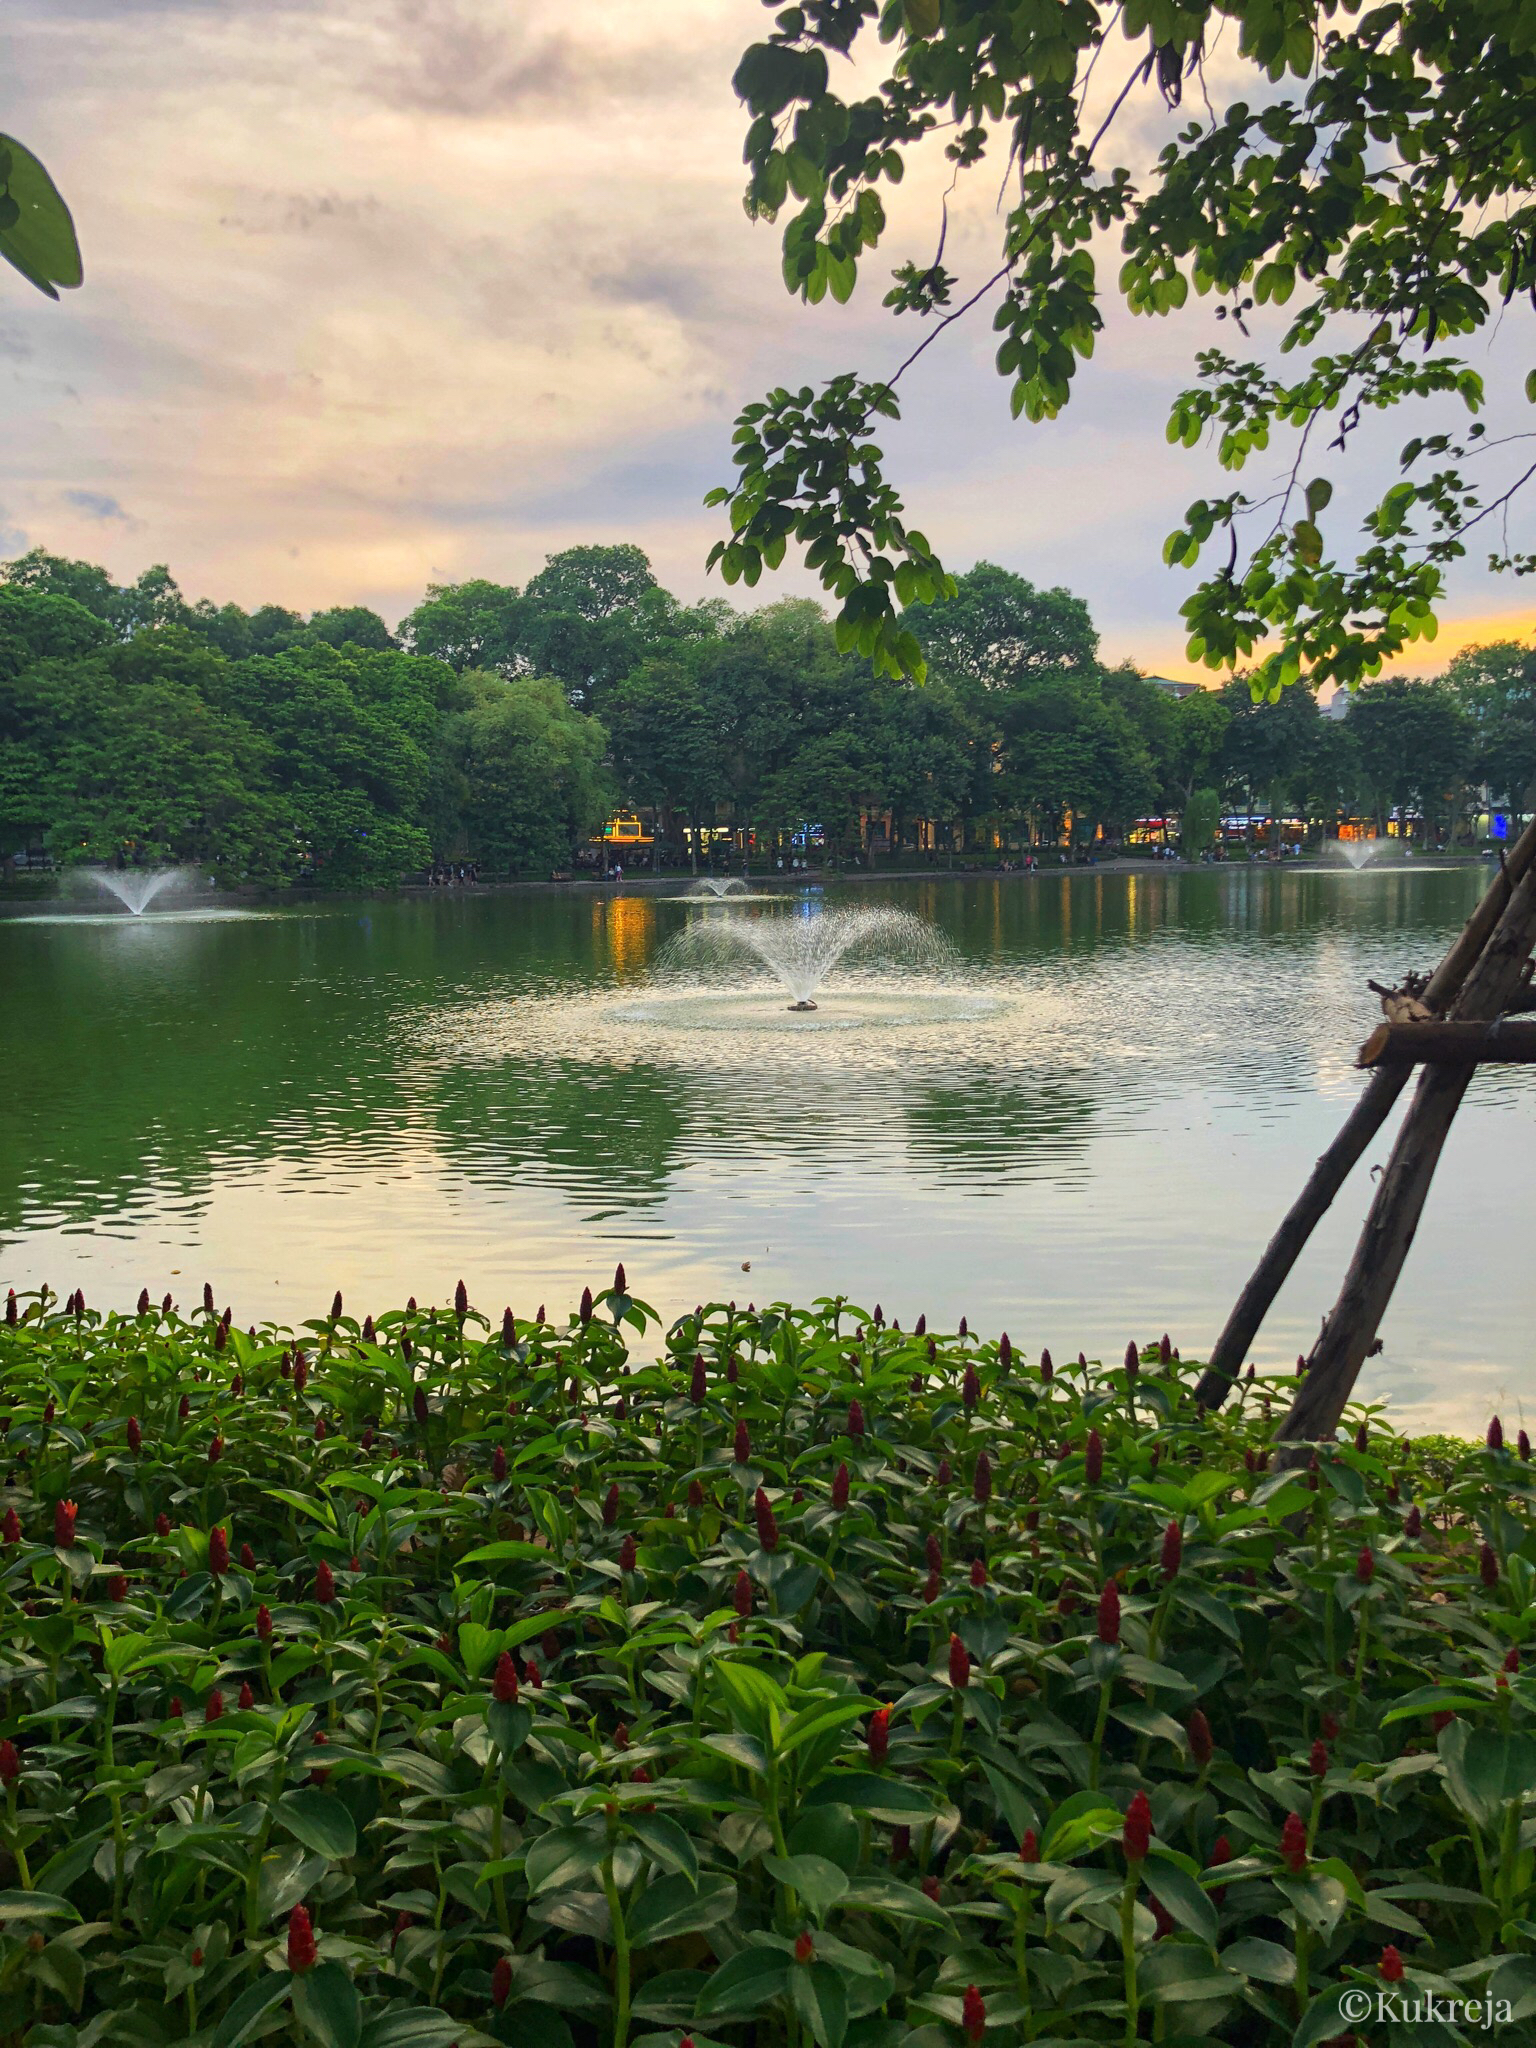 Fountains in the middle of Hoan Kiem Lake surrounded by greenery.